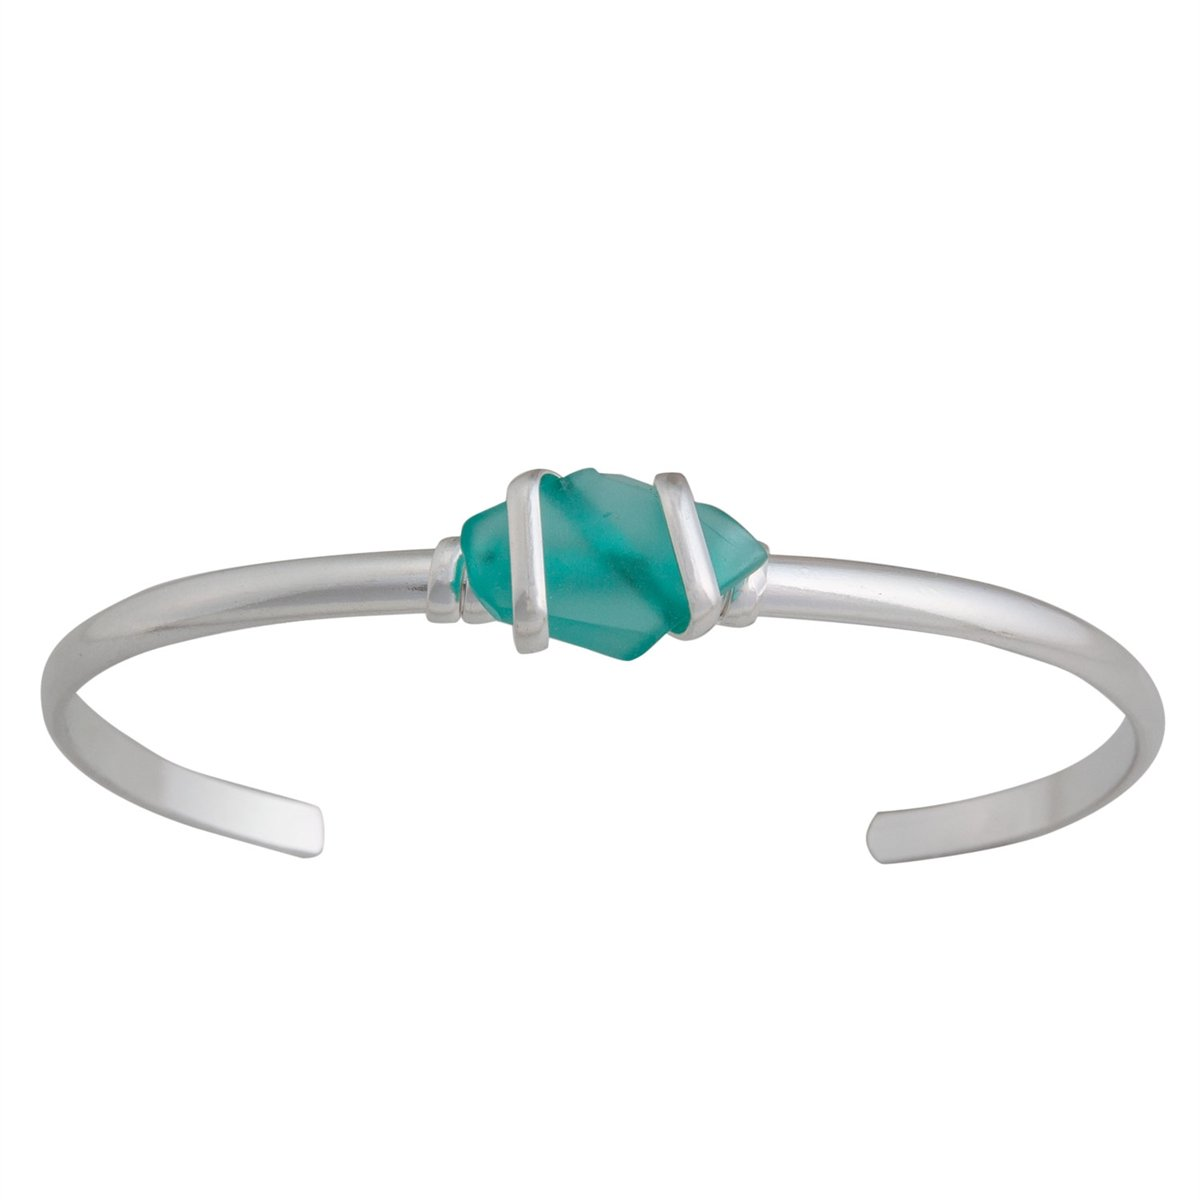 Alpaca Recycled Glass Mini Cuff - Mint | Charles Albert Jewelry